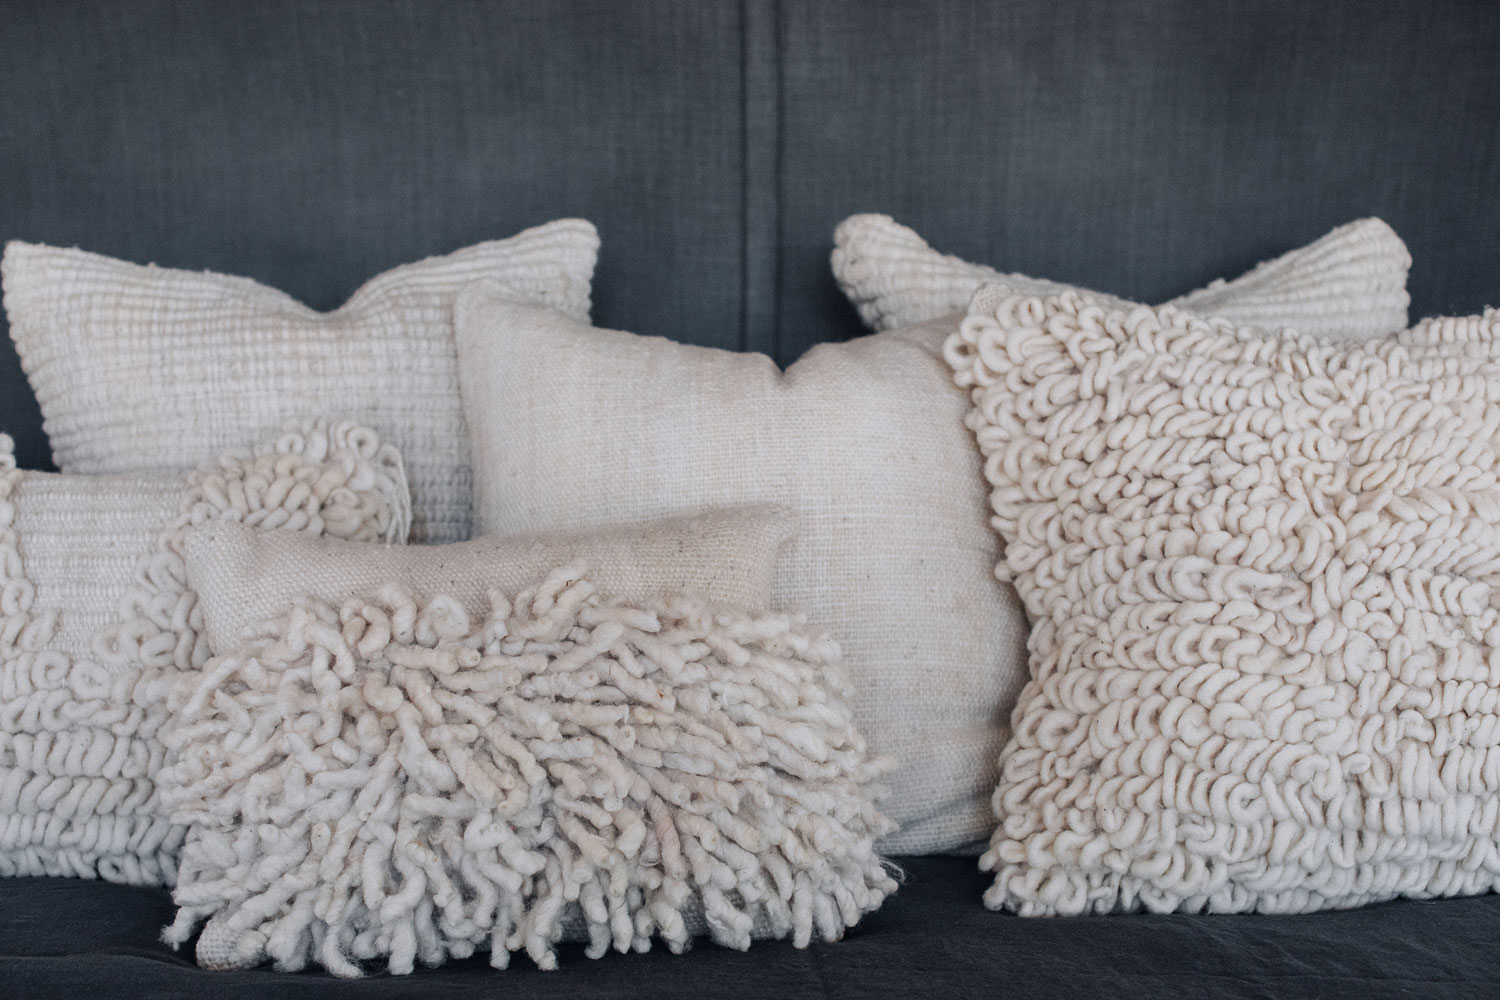 Treko_chilaen_wool_healdsburg_photo-62.jpg